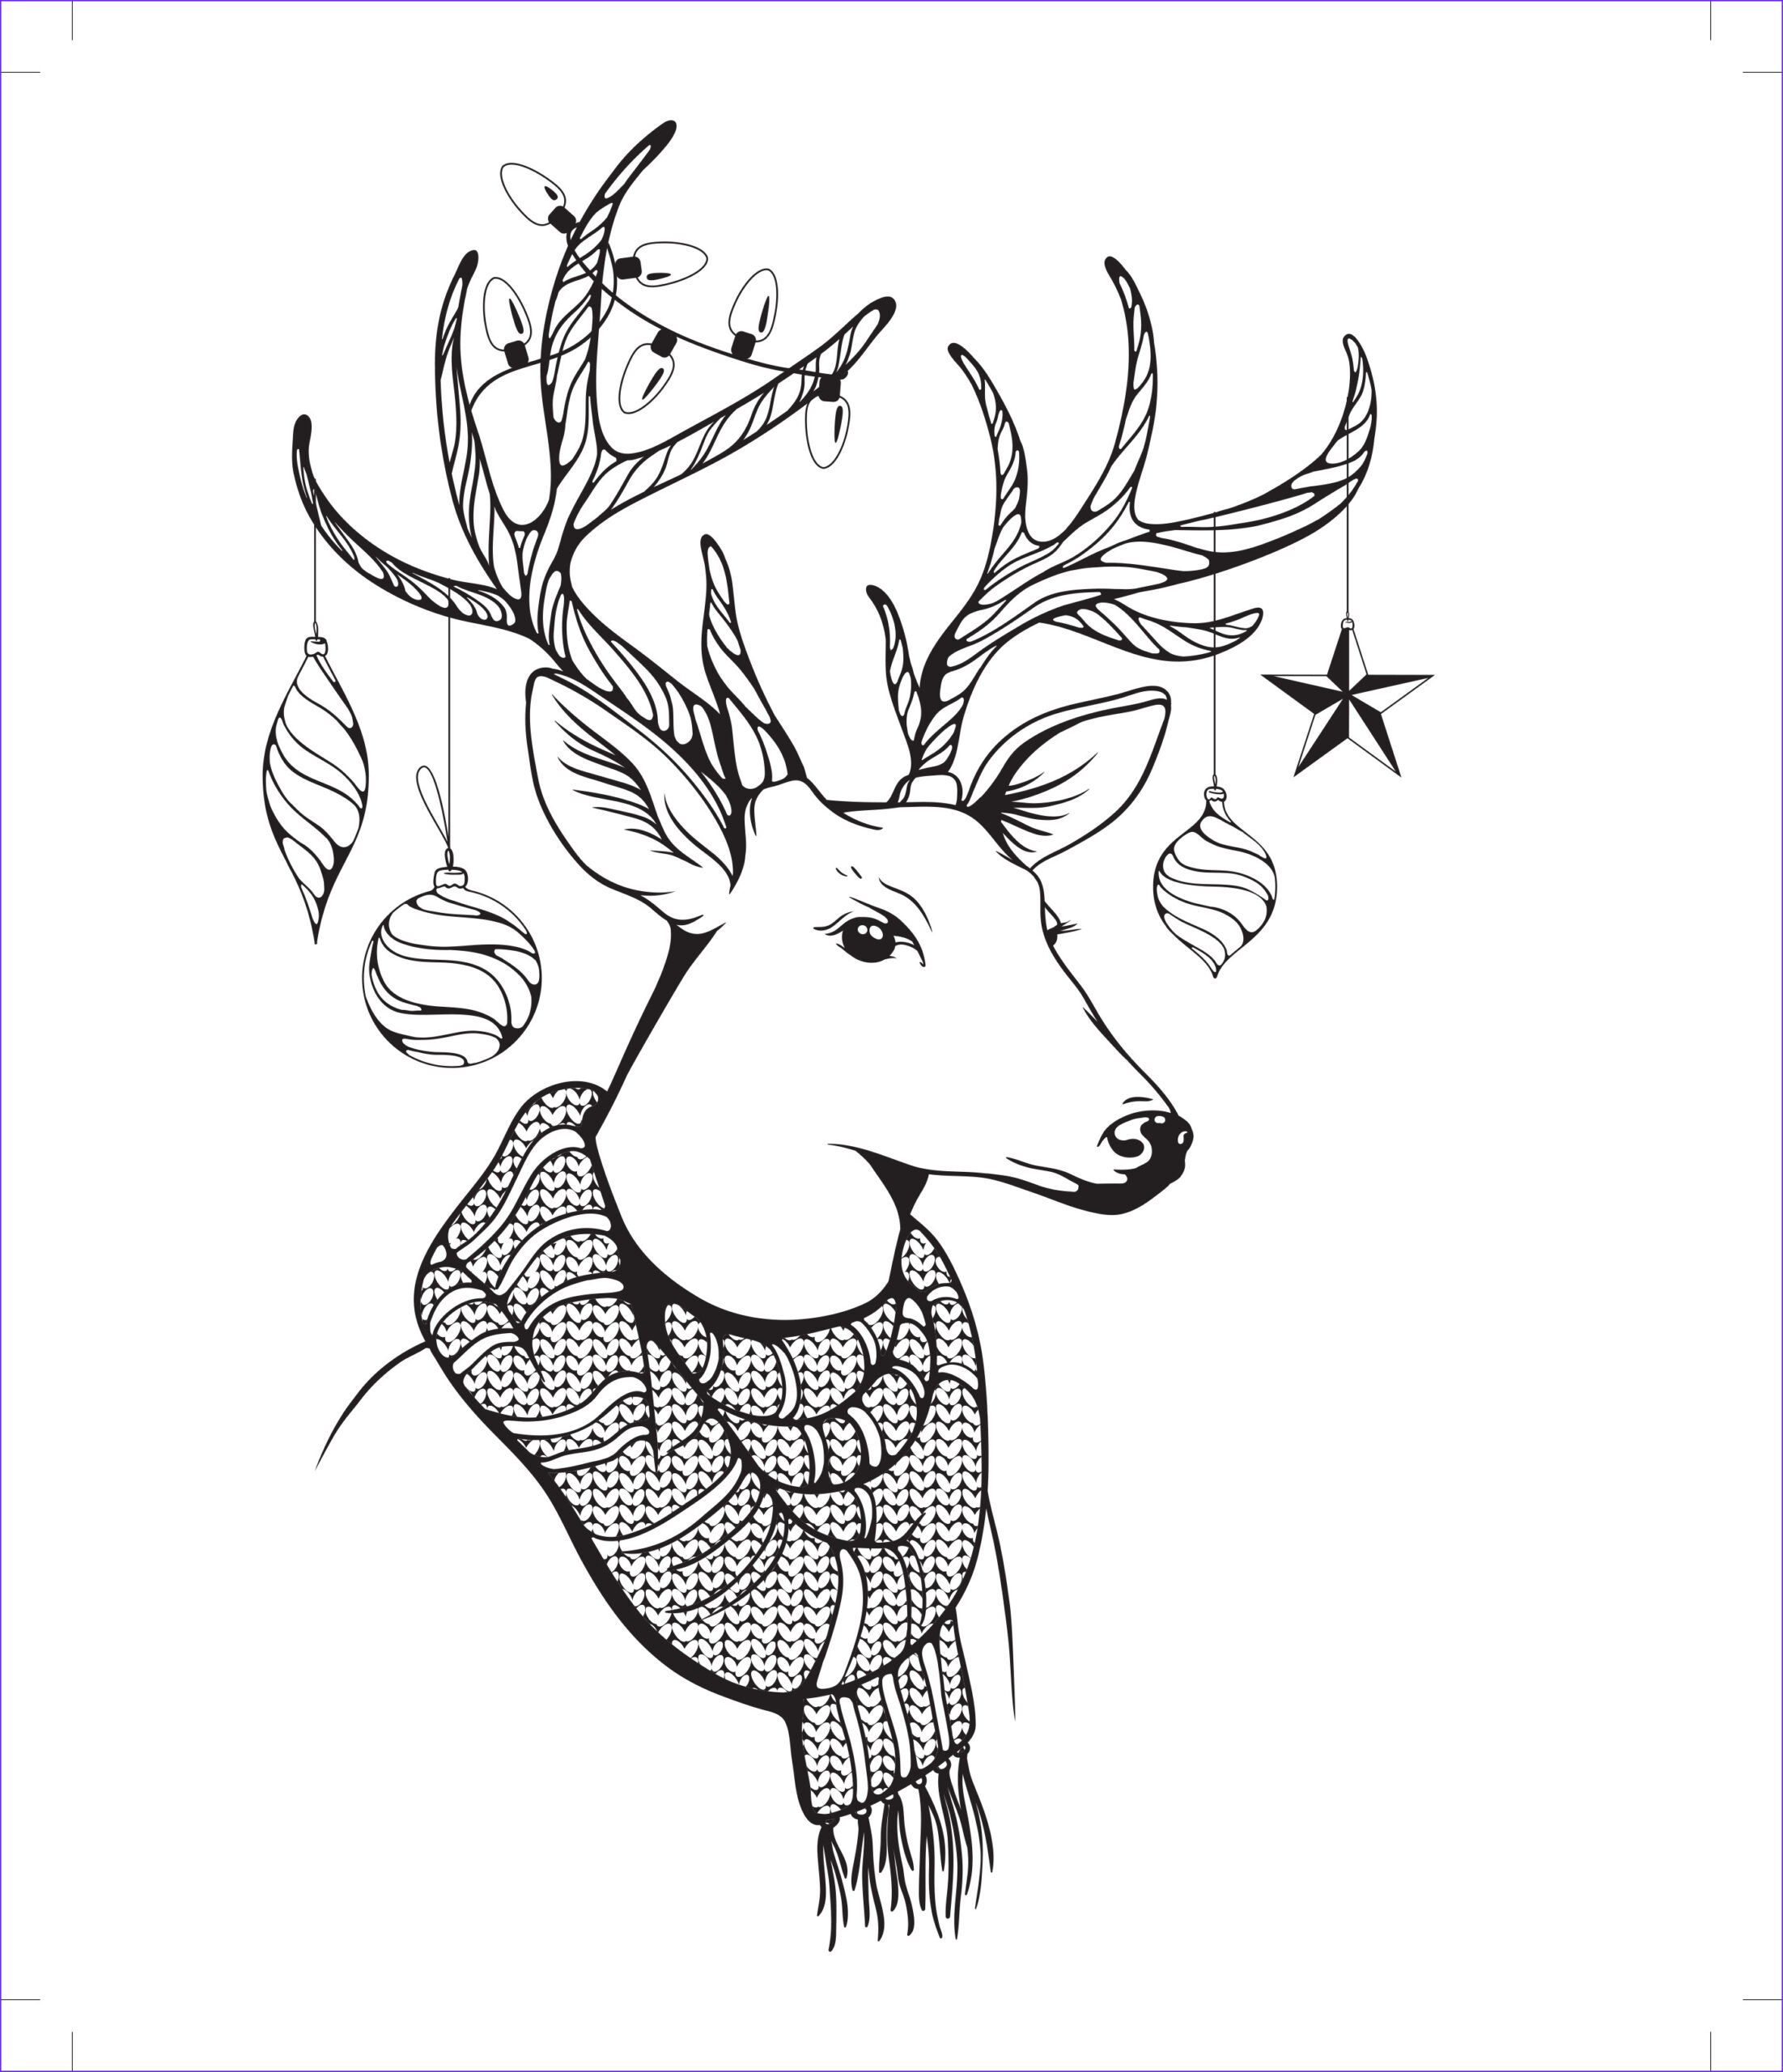 Hipster Coloring Pages Inspirational Photos Hipster Girl Coloring Pages at Getcolorings